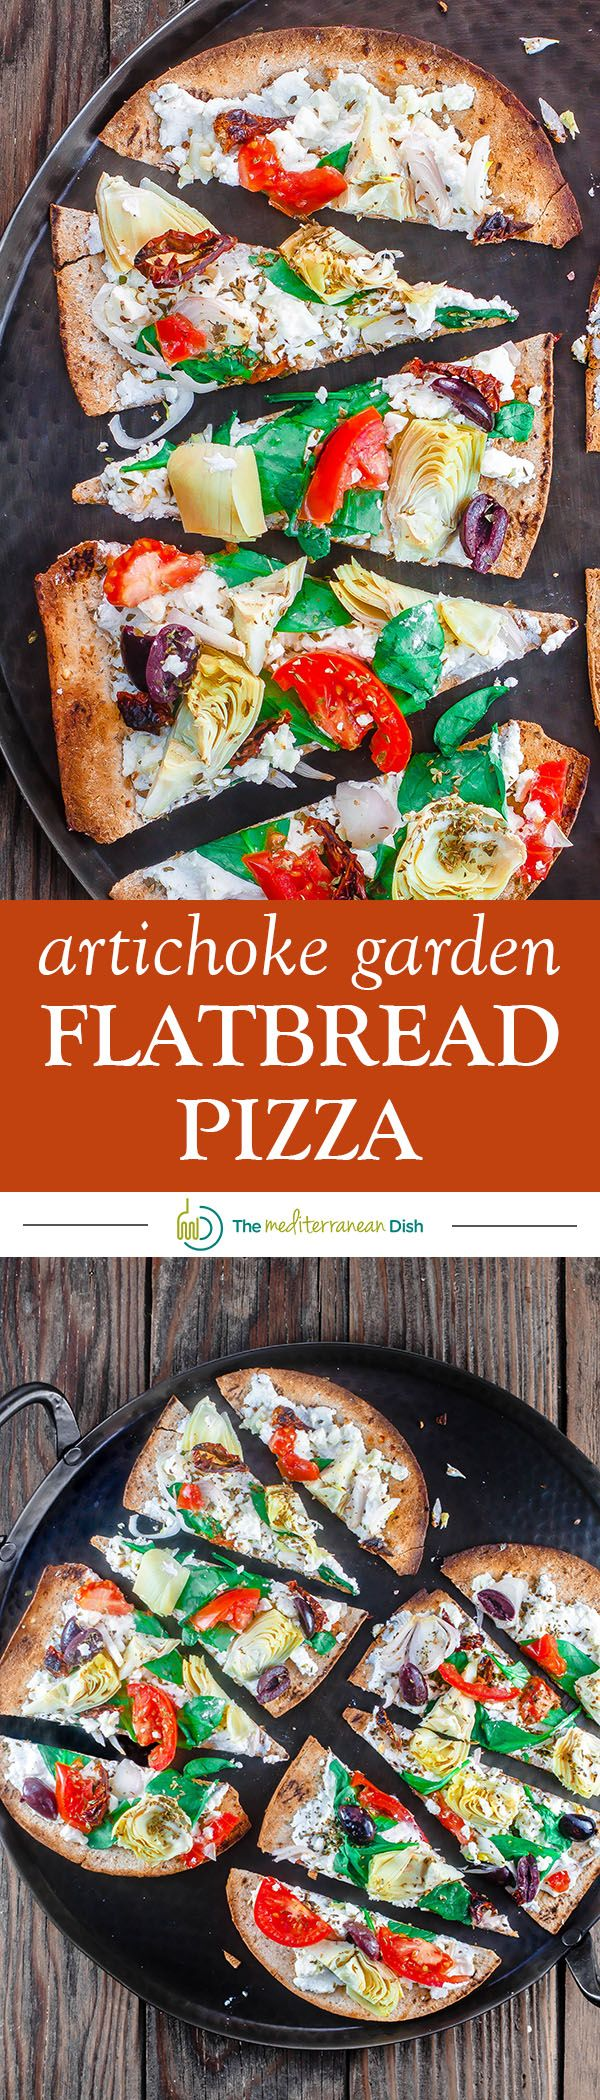 15-minute Artichoke Garden Flatbread Pizza | The Mediterranean Dish. Mediterranean-style flatbread pizza with artichokes, tomatoes, olives, feta and more! With ready low-carb, high fiber Flatout® Flatbread! Click the pin image to see the recipe and browse TheMediterraneanDish.com